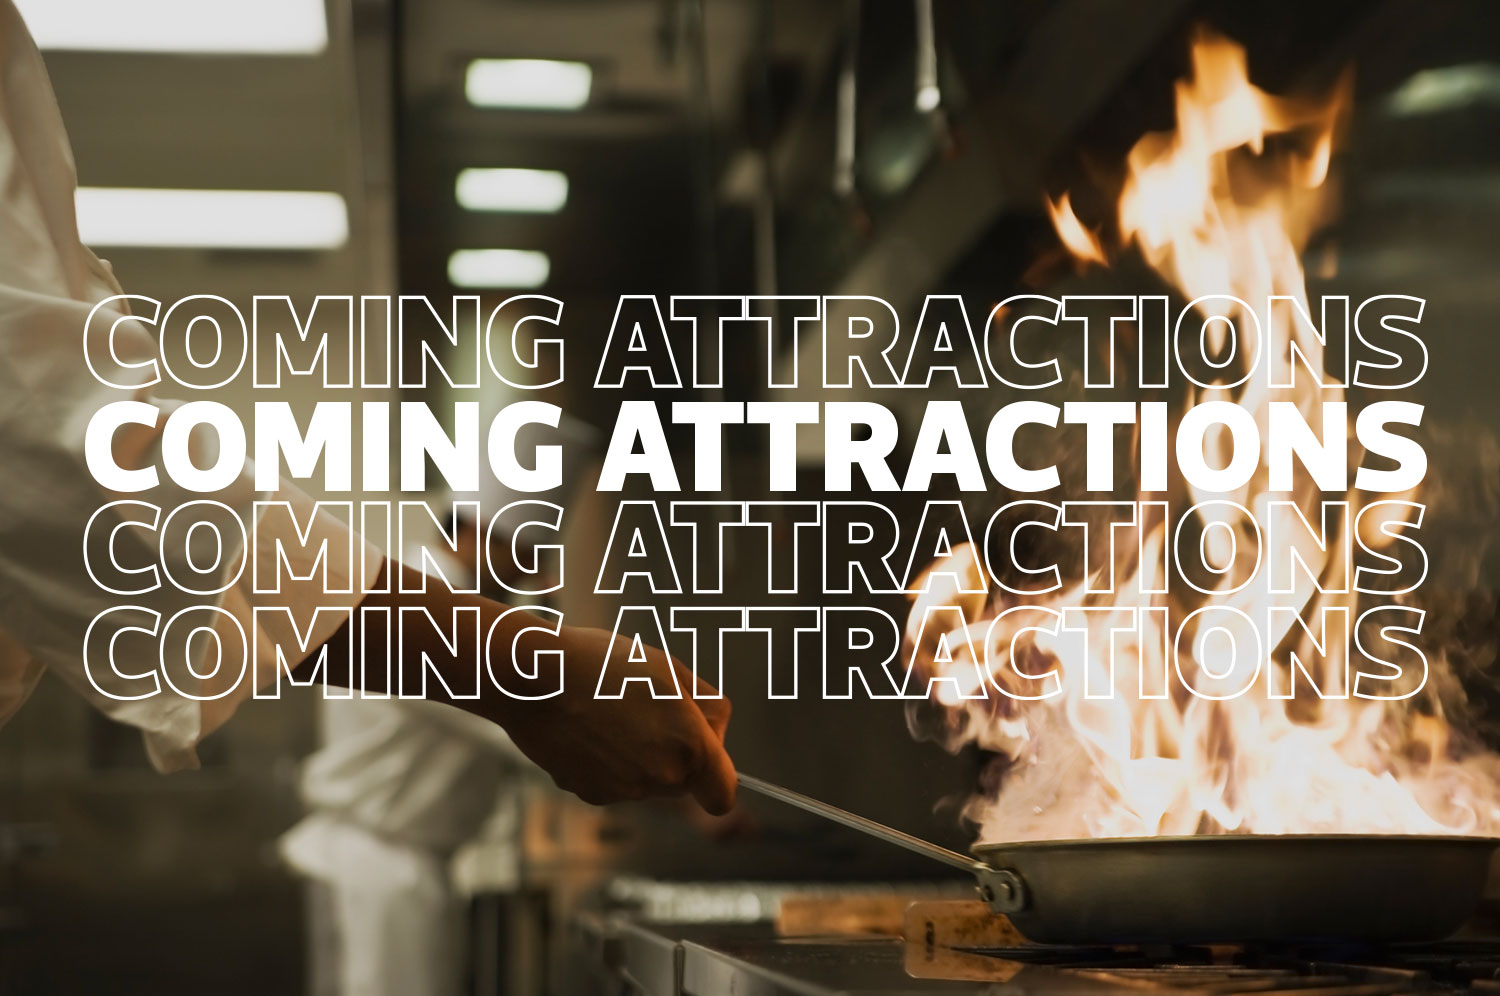 """Text saying """"Coming Attractions"""" with a chef holding a flaming skillet on a stove in the background"""